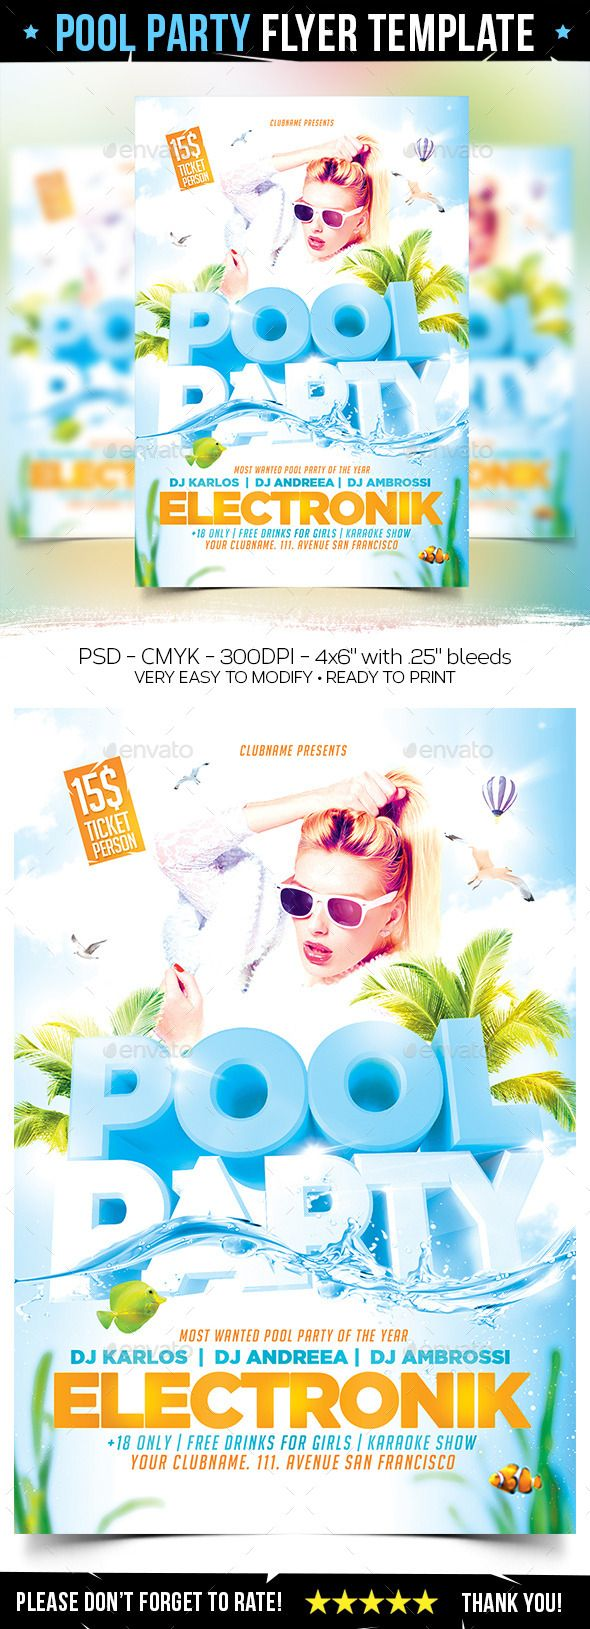 Pool Party Flyer Template U2014 Photoshop PSD #summer #sun U2022 Available Here →  Https://graphicriver.net/item/pool Party Flyer Template/11894649?refu003dpxcr